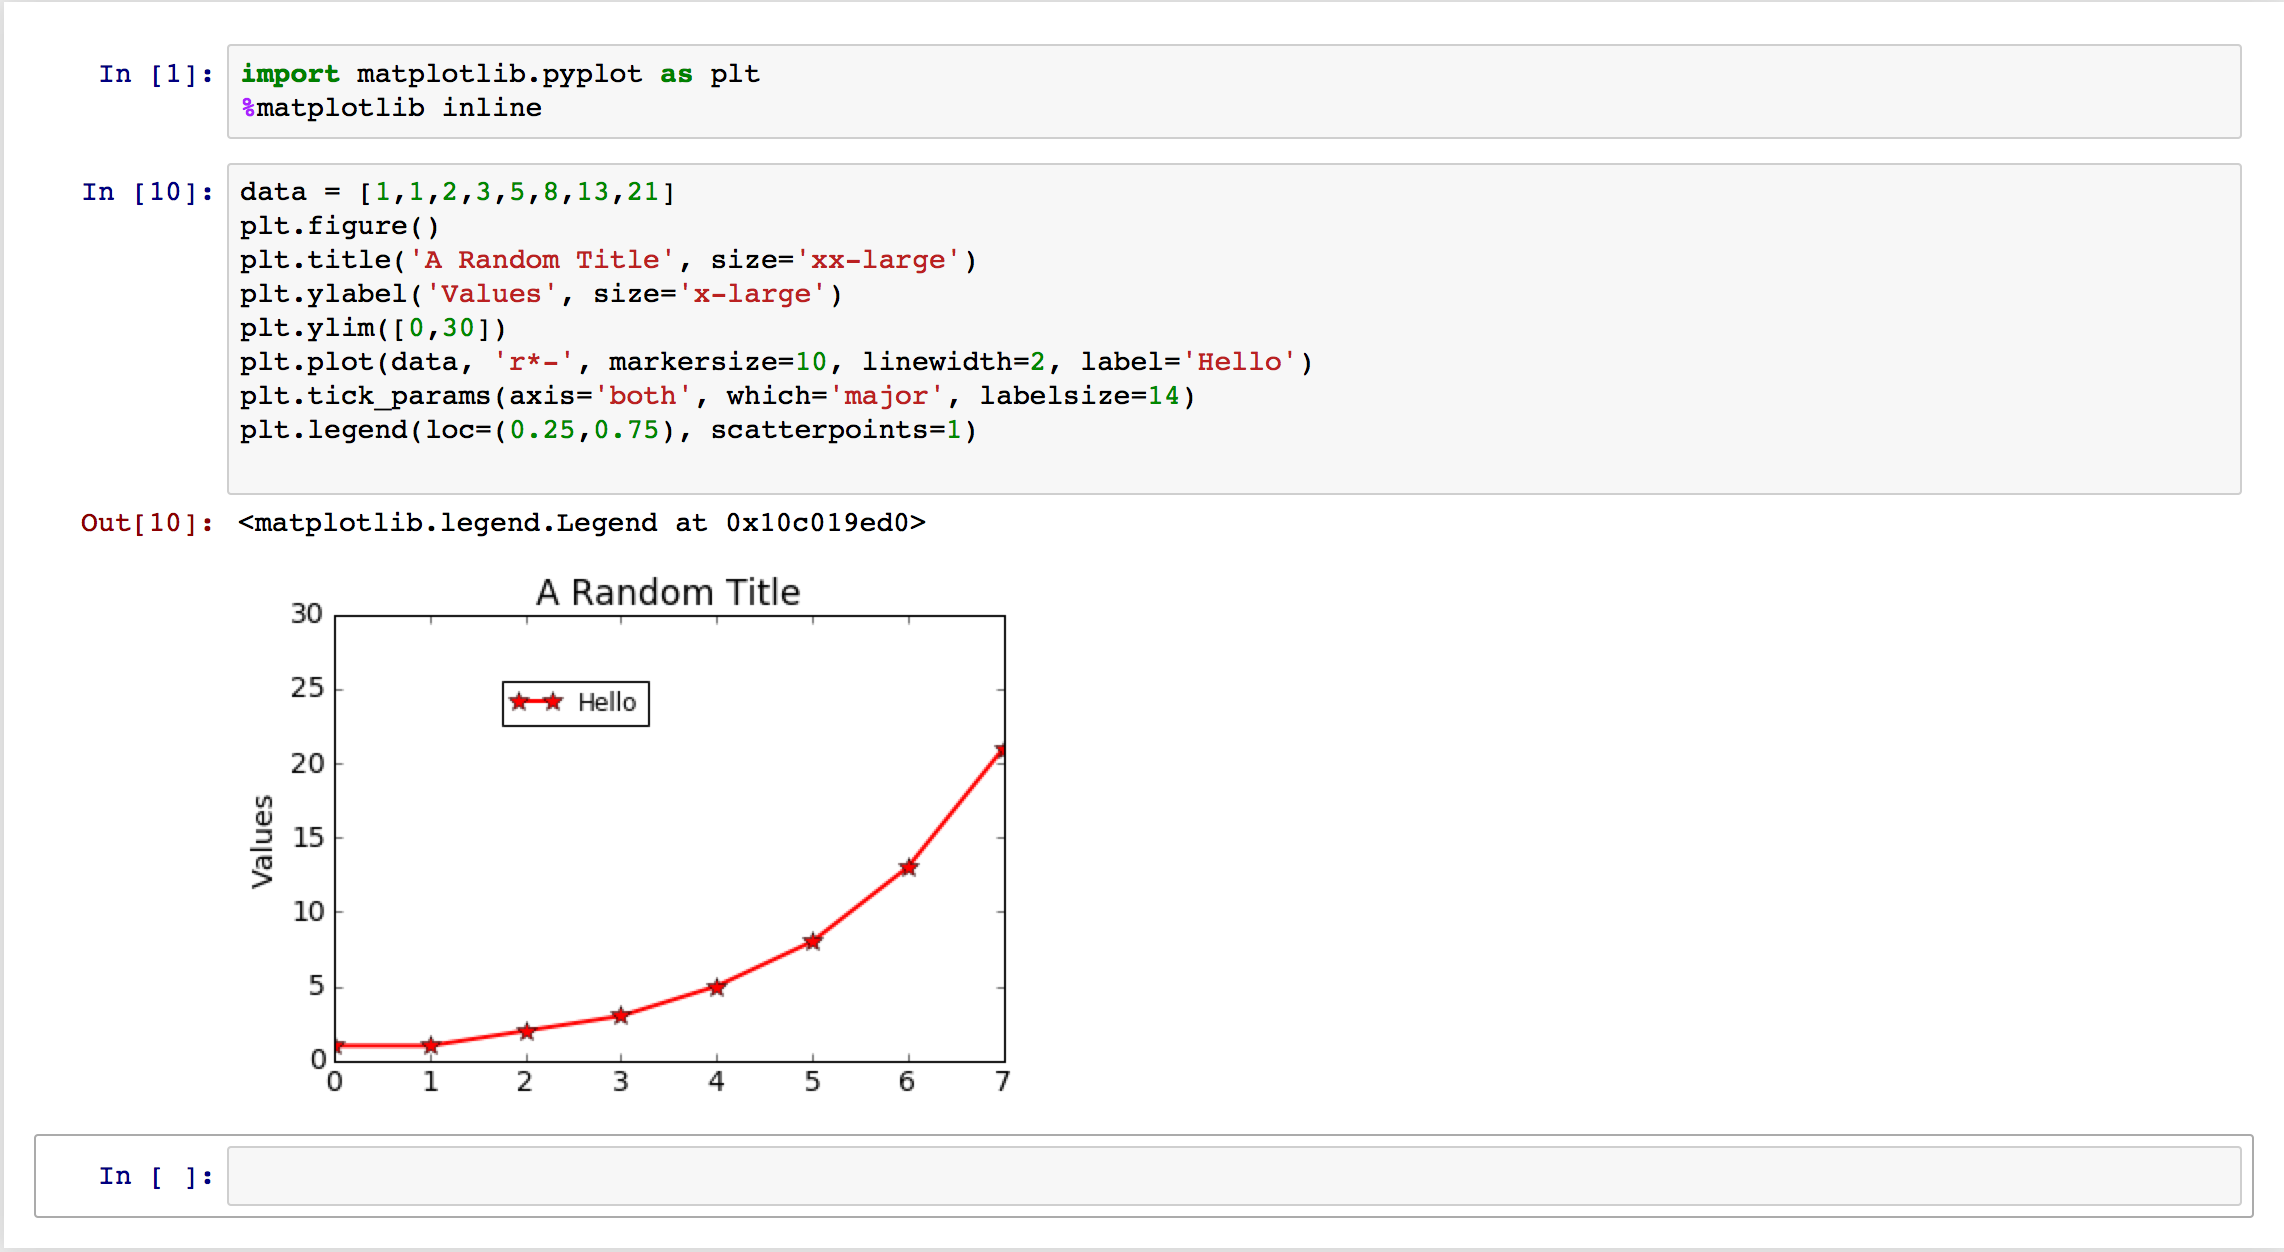 import matplotlib pyplot as plt